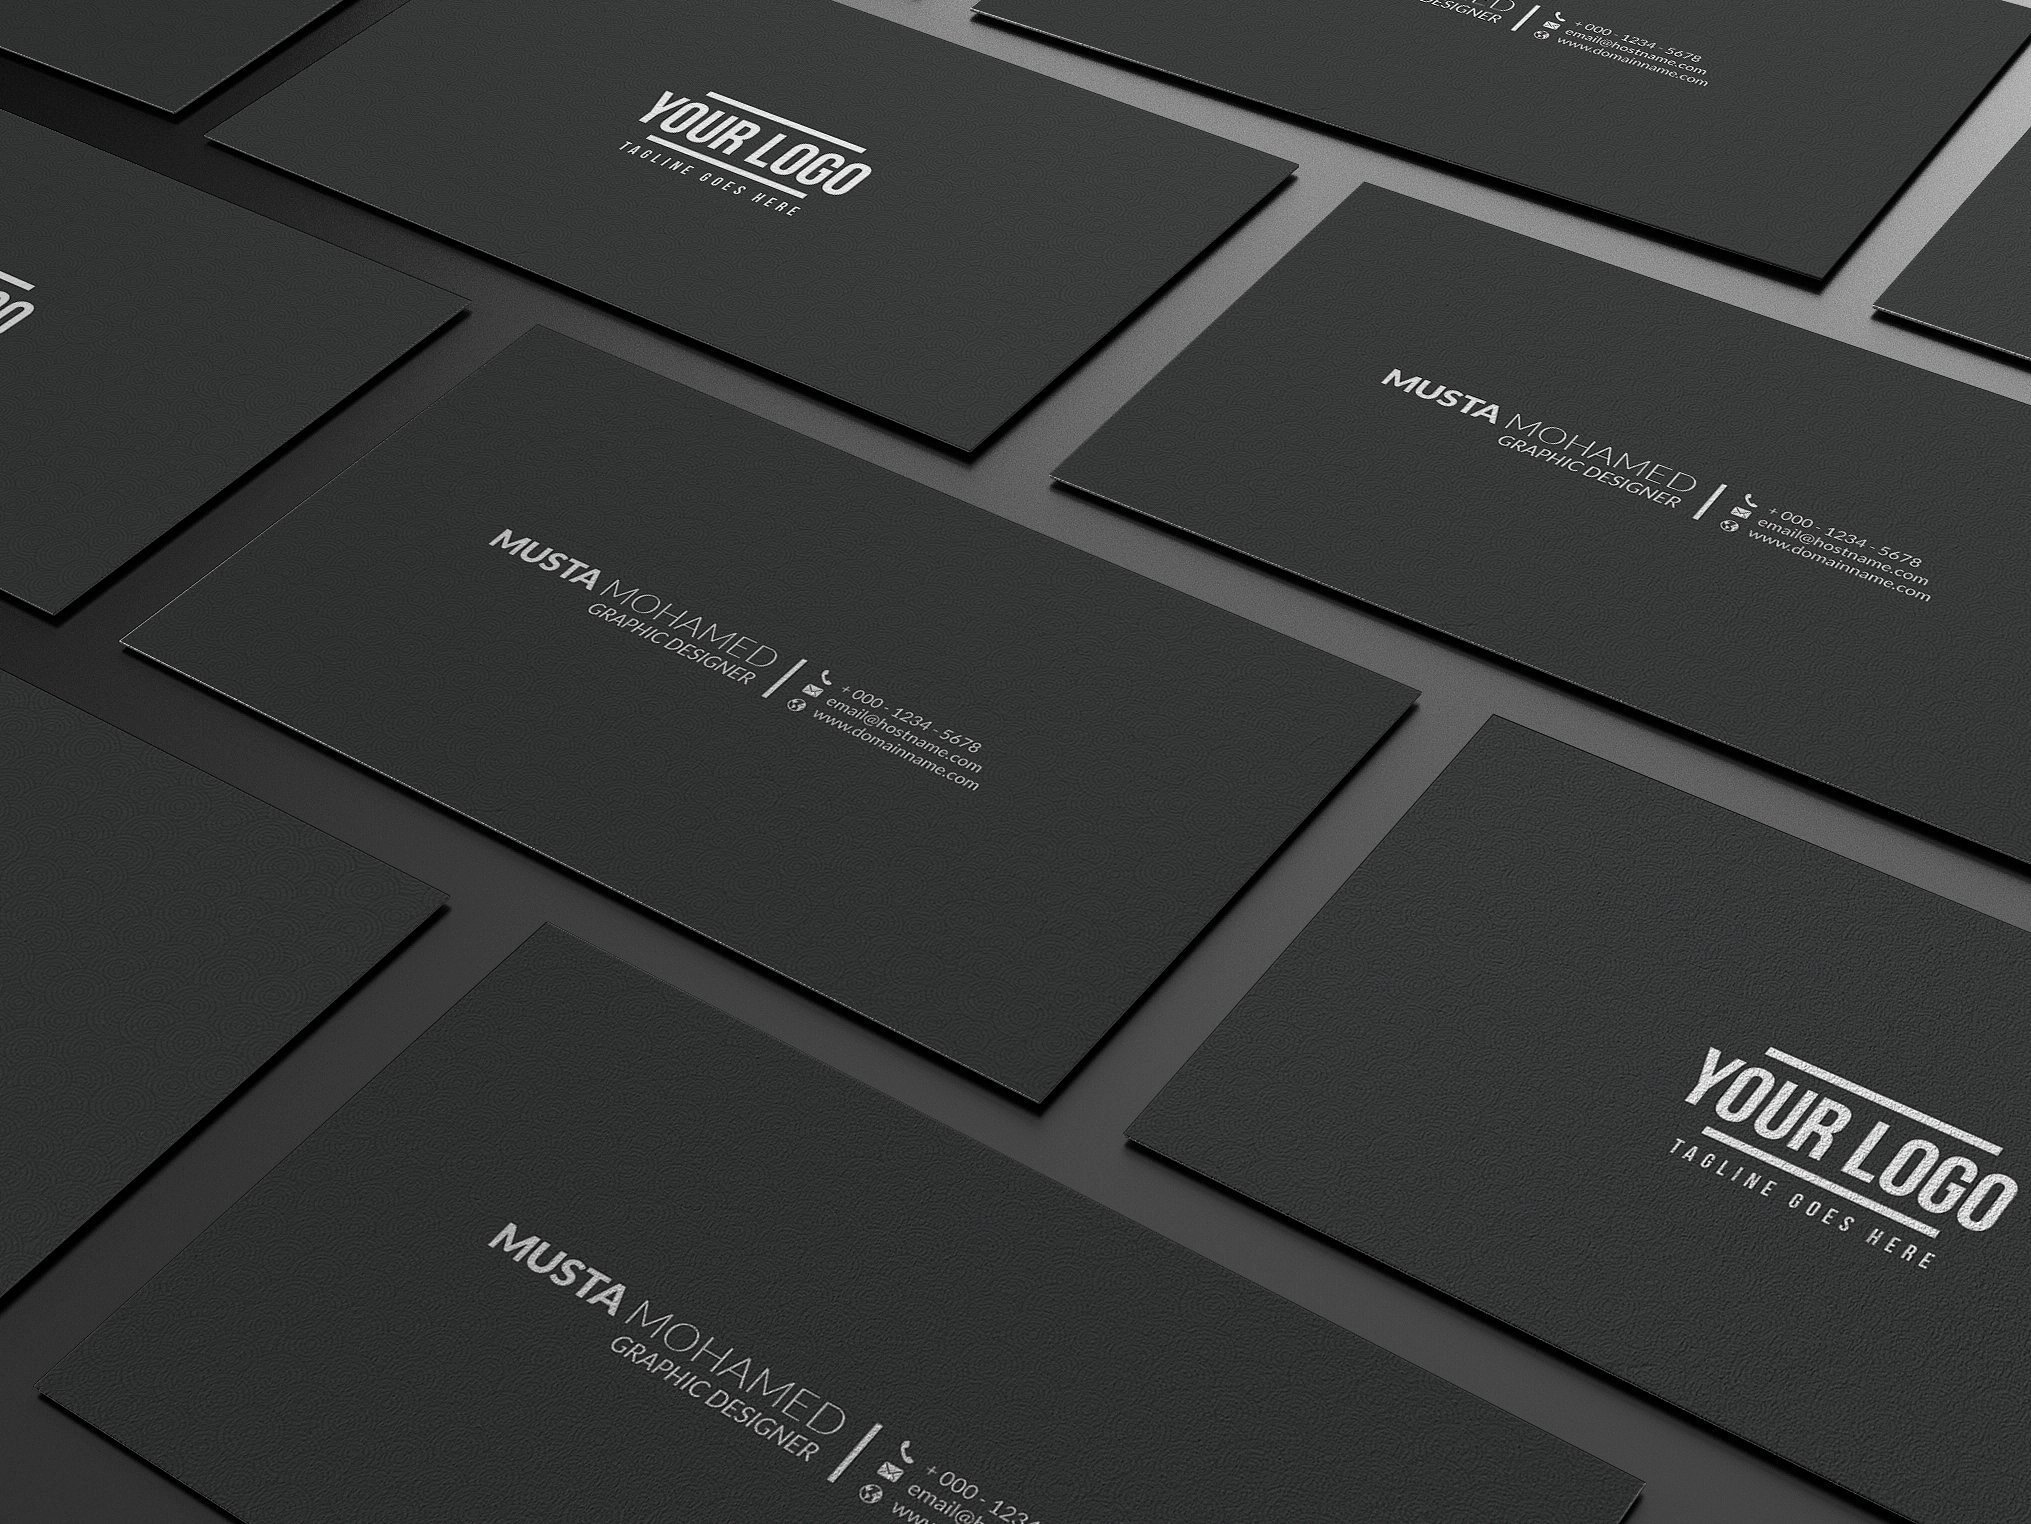 Black Business Card Template Inspirational Black Business Cards Inspiration Cardfaves